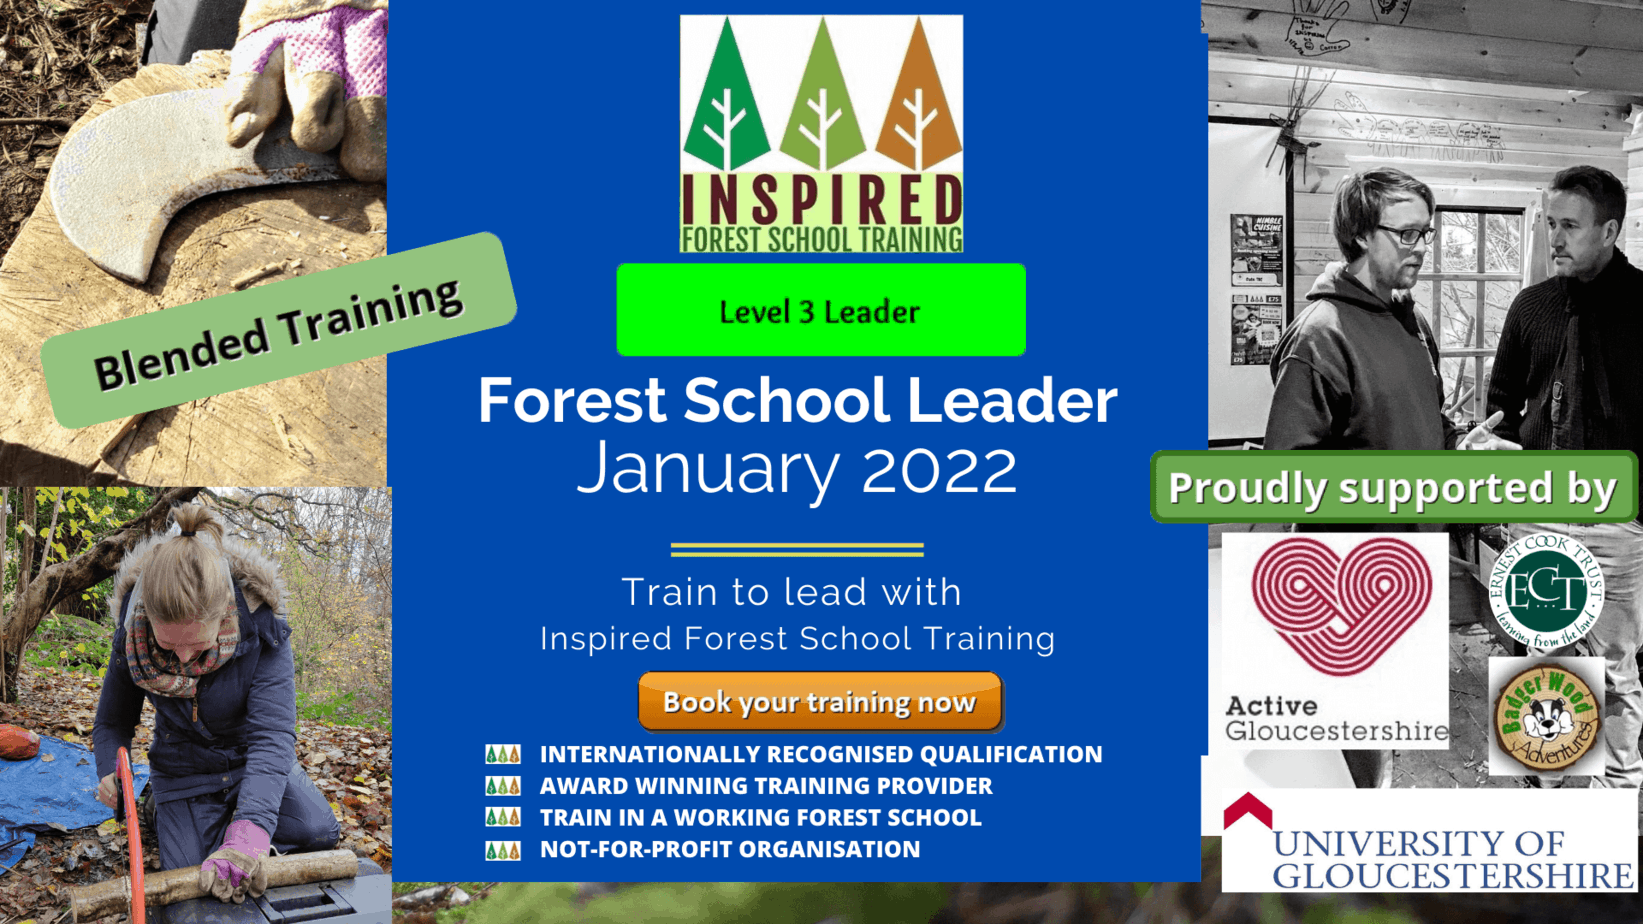 Forest-School-training-January-2022 Forest School Leader Training - January 2022